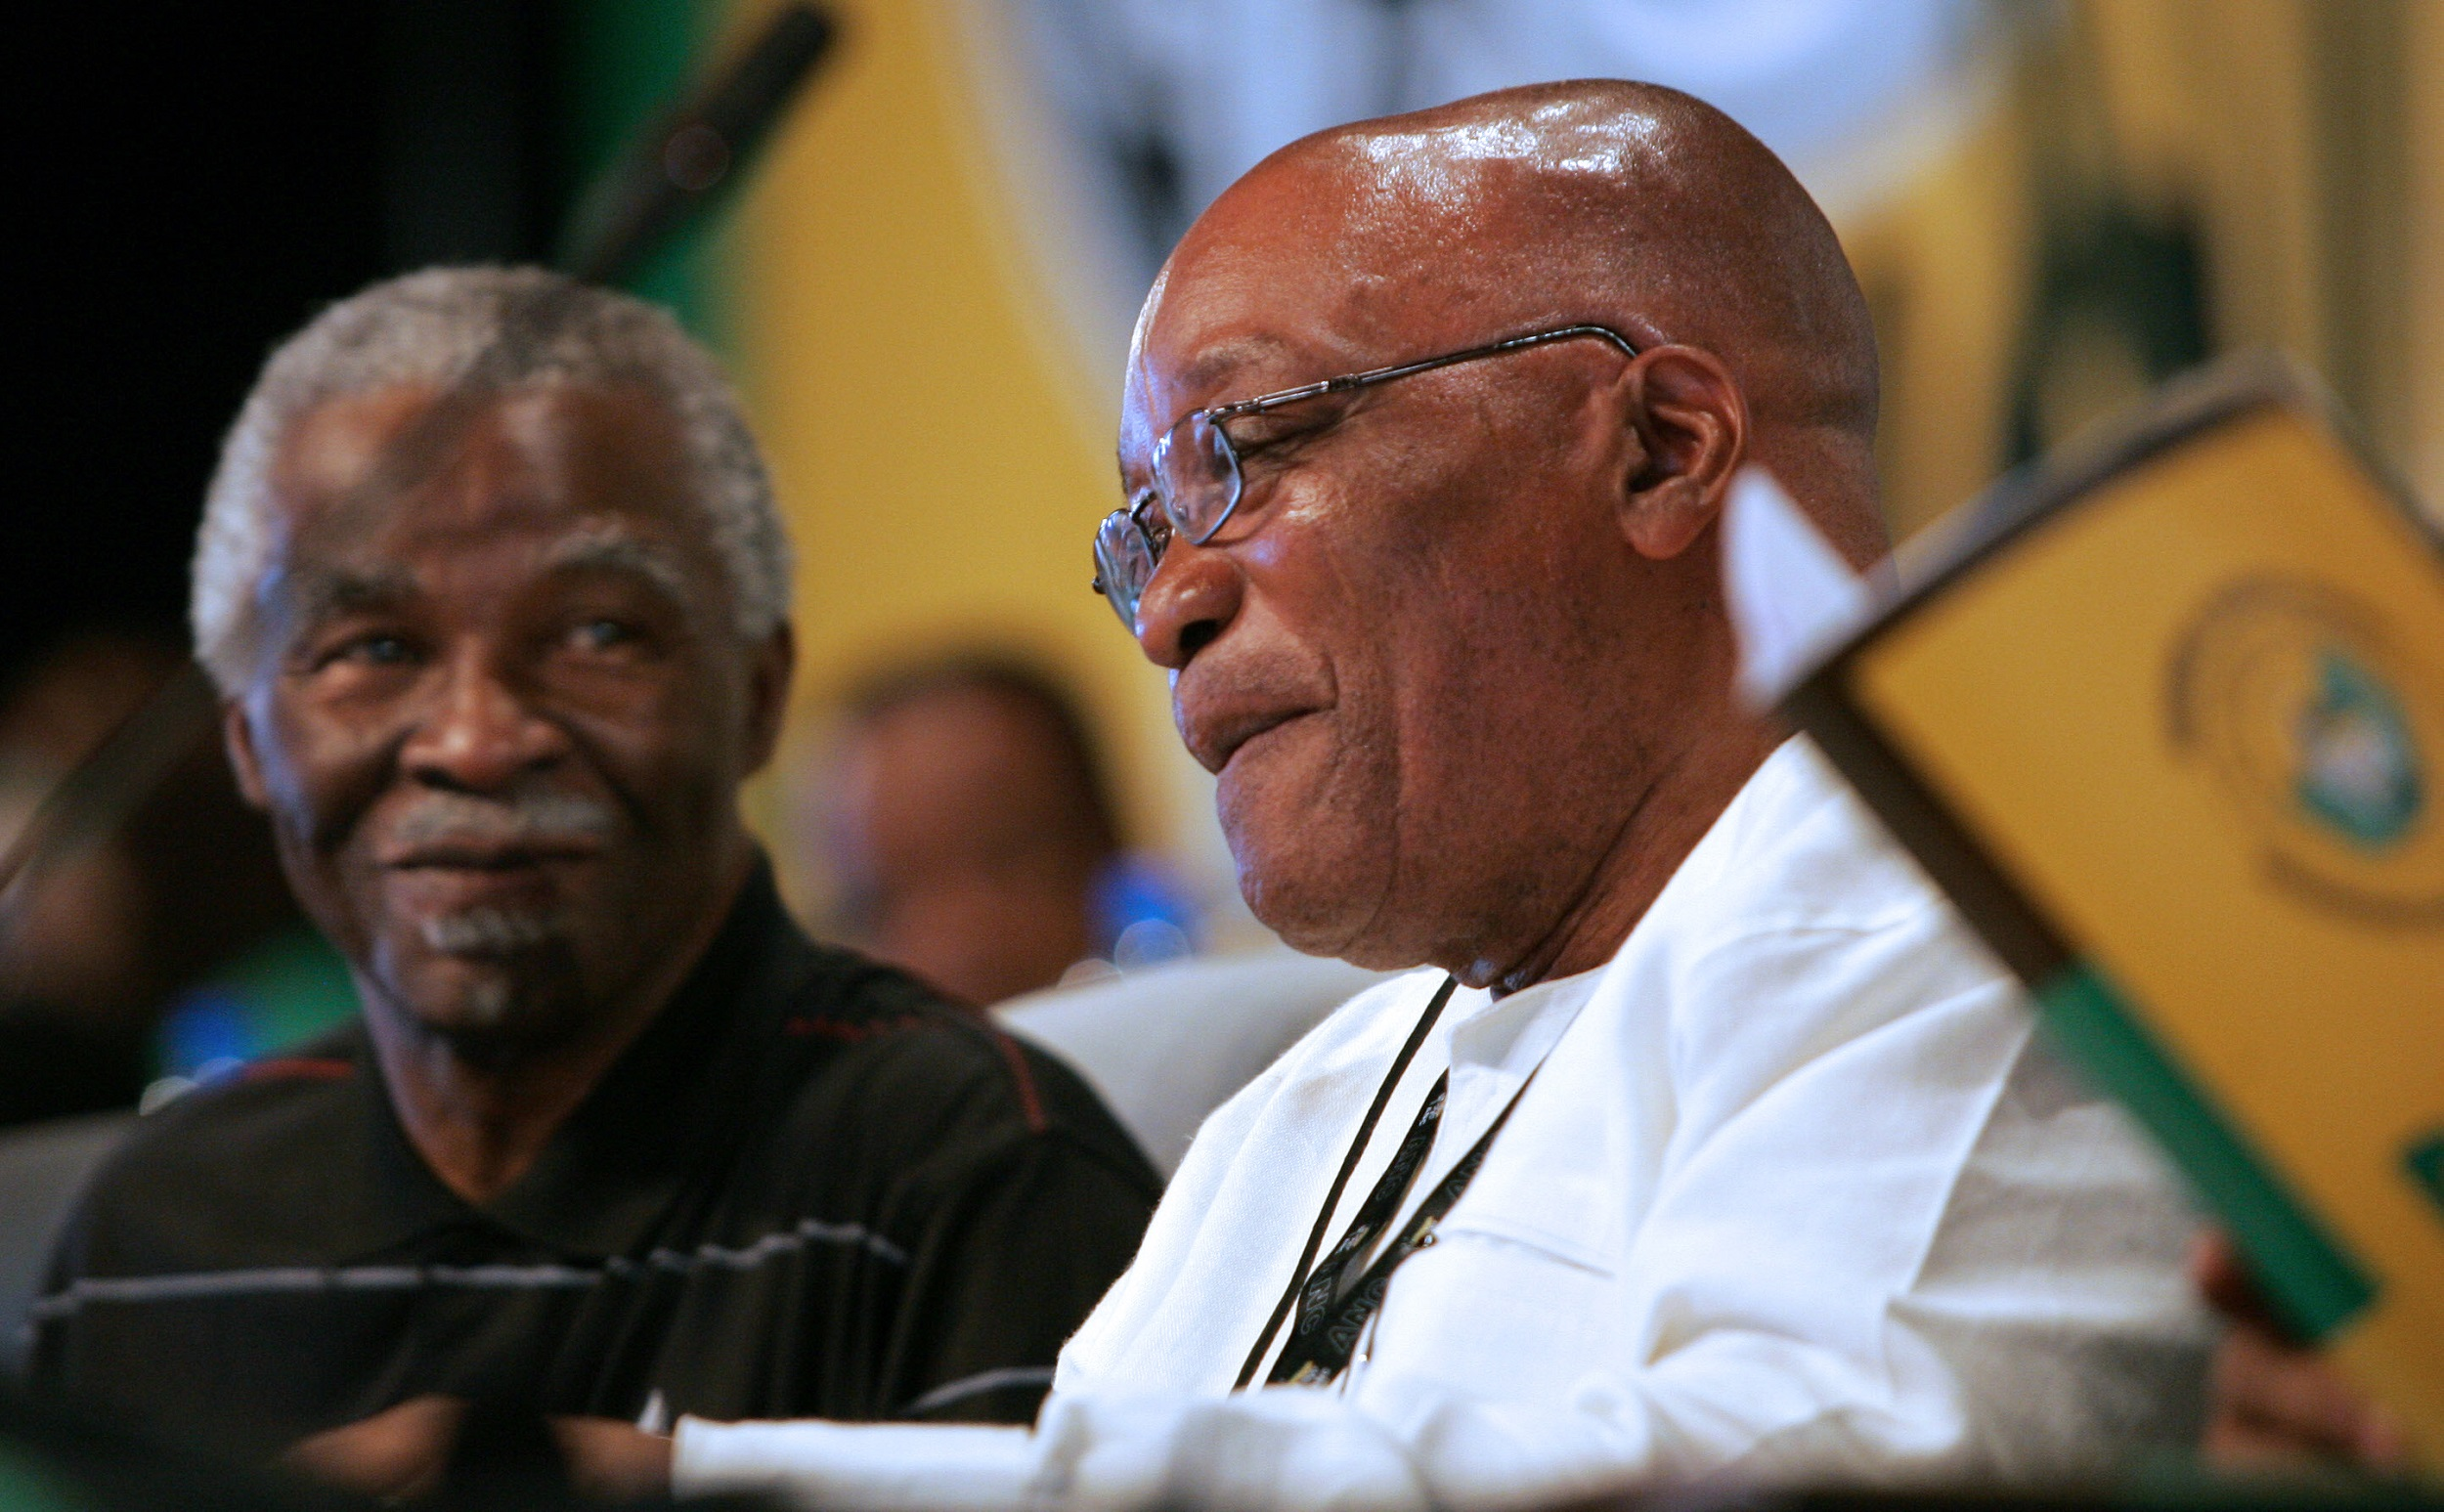 Photo_Web_Zuma_Mbeki_180717